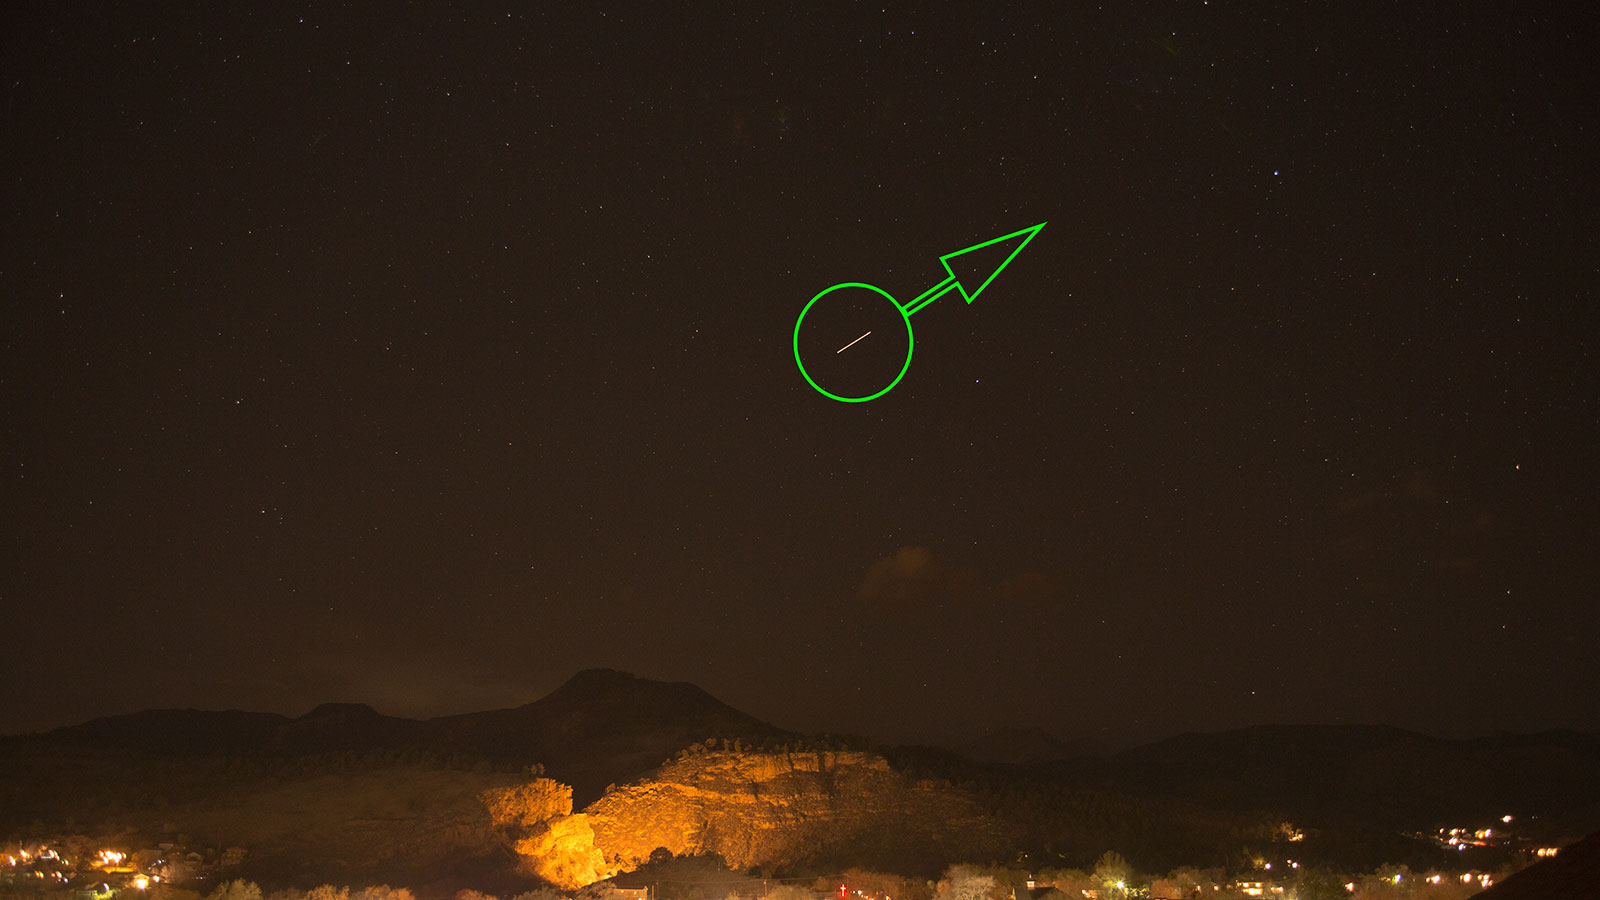 Pass 2, at 8:06 PM on 8 Feb 2013.  Green arrow indicates direction of travel.  Visible in the frame for about 2 seconds.